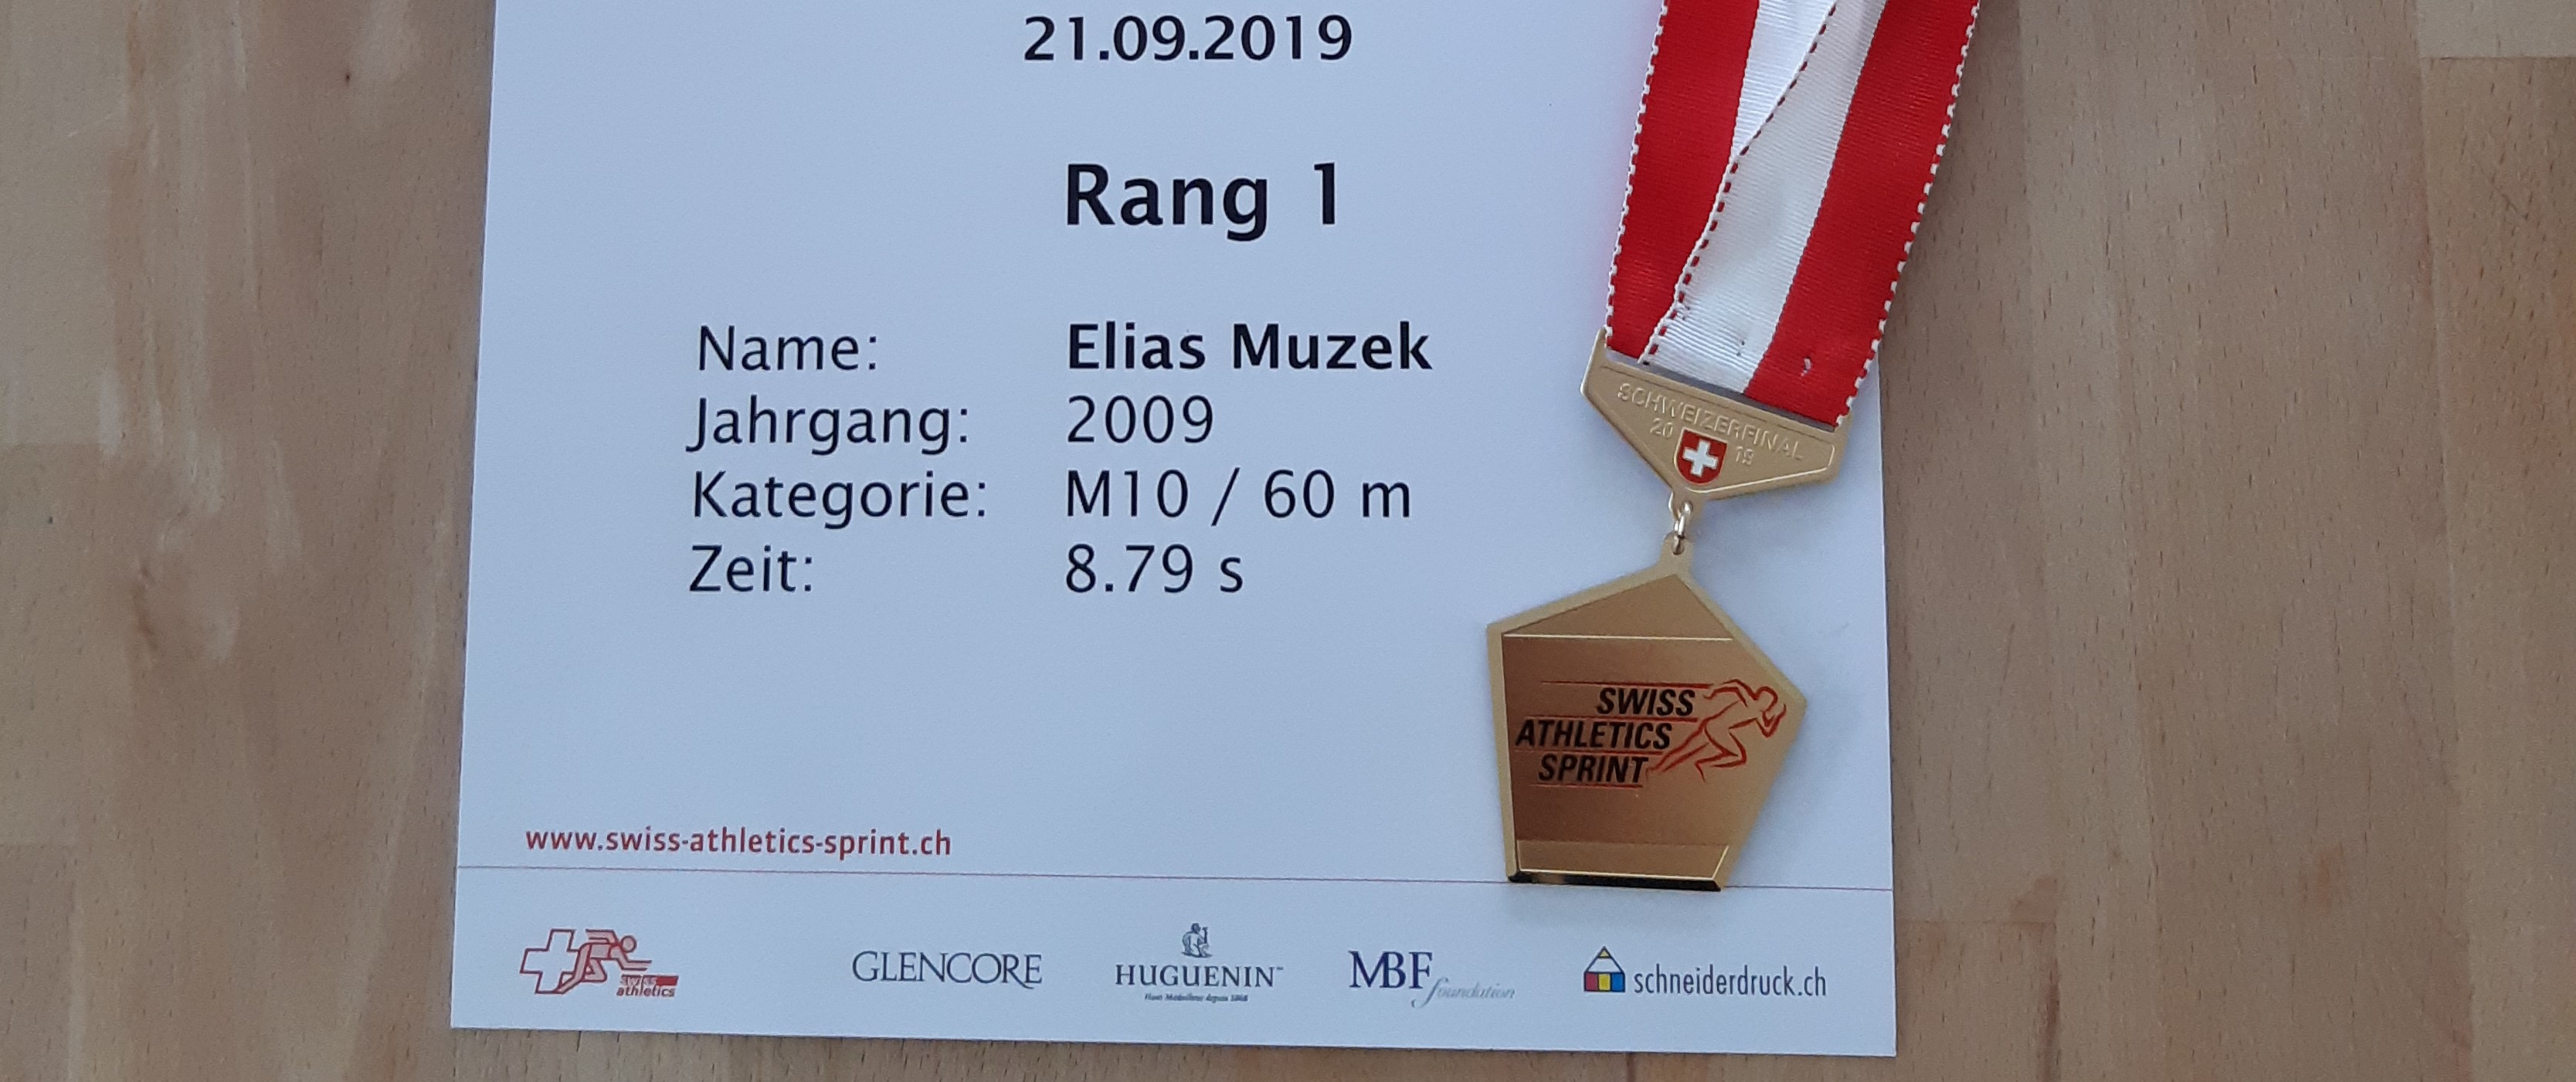 Schweizerfinal SWISS-ATHLETICS-SPRINT 2019